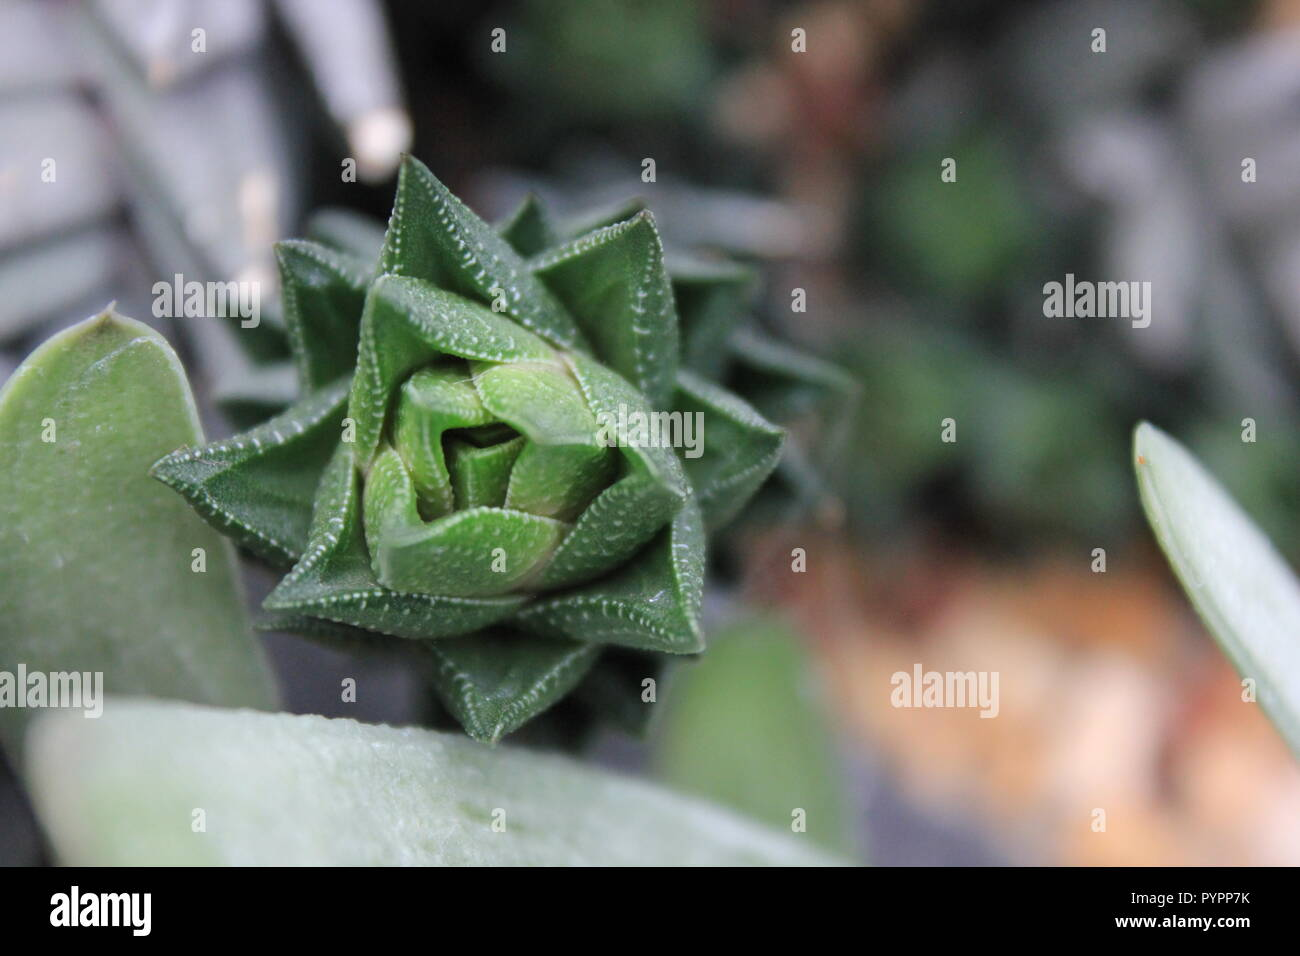 Speckled succulent haworthia longiana desert plant at the Garfield Park Conservatory in Chicago, Illinois, USA. - Stock Image